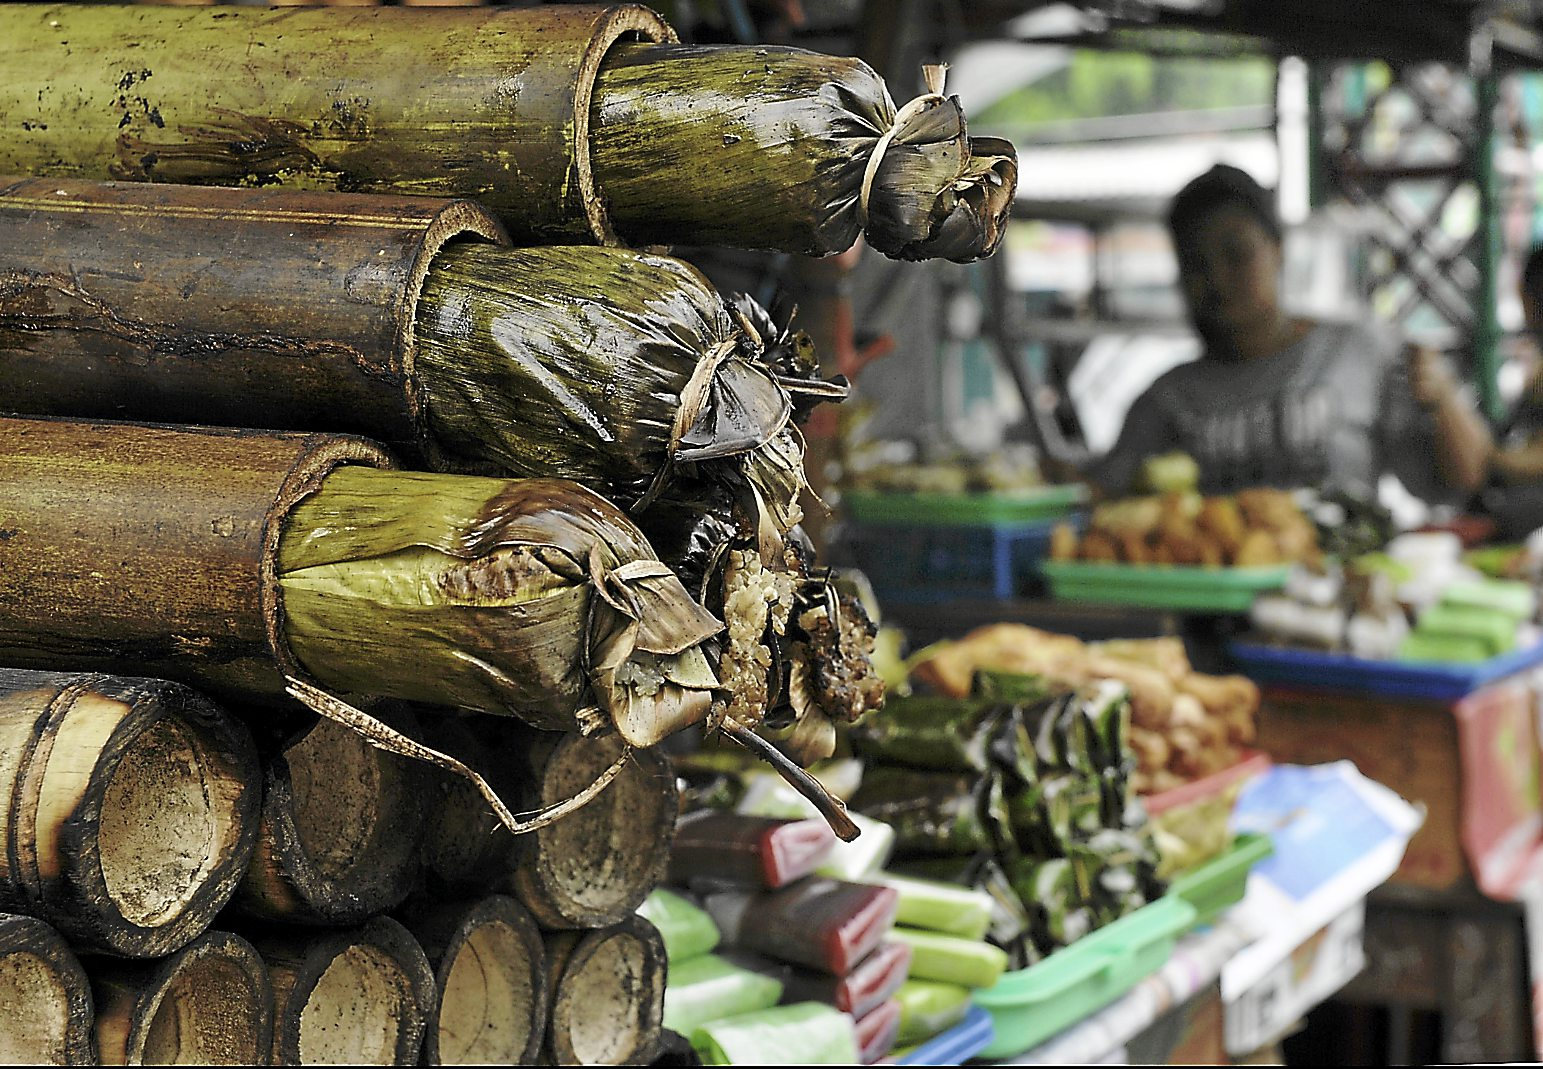 Here's something we're familiar with in Malaysia too. Lemang, which is glutinous rice cooked in bamboo over a wood fire, is sold at a stall in Jakarta, Indonesia, along with other sweet and savoury delicacies for breaking fast. - AFP